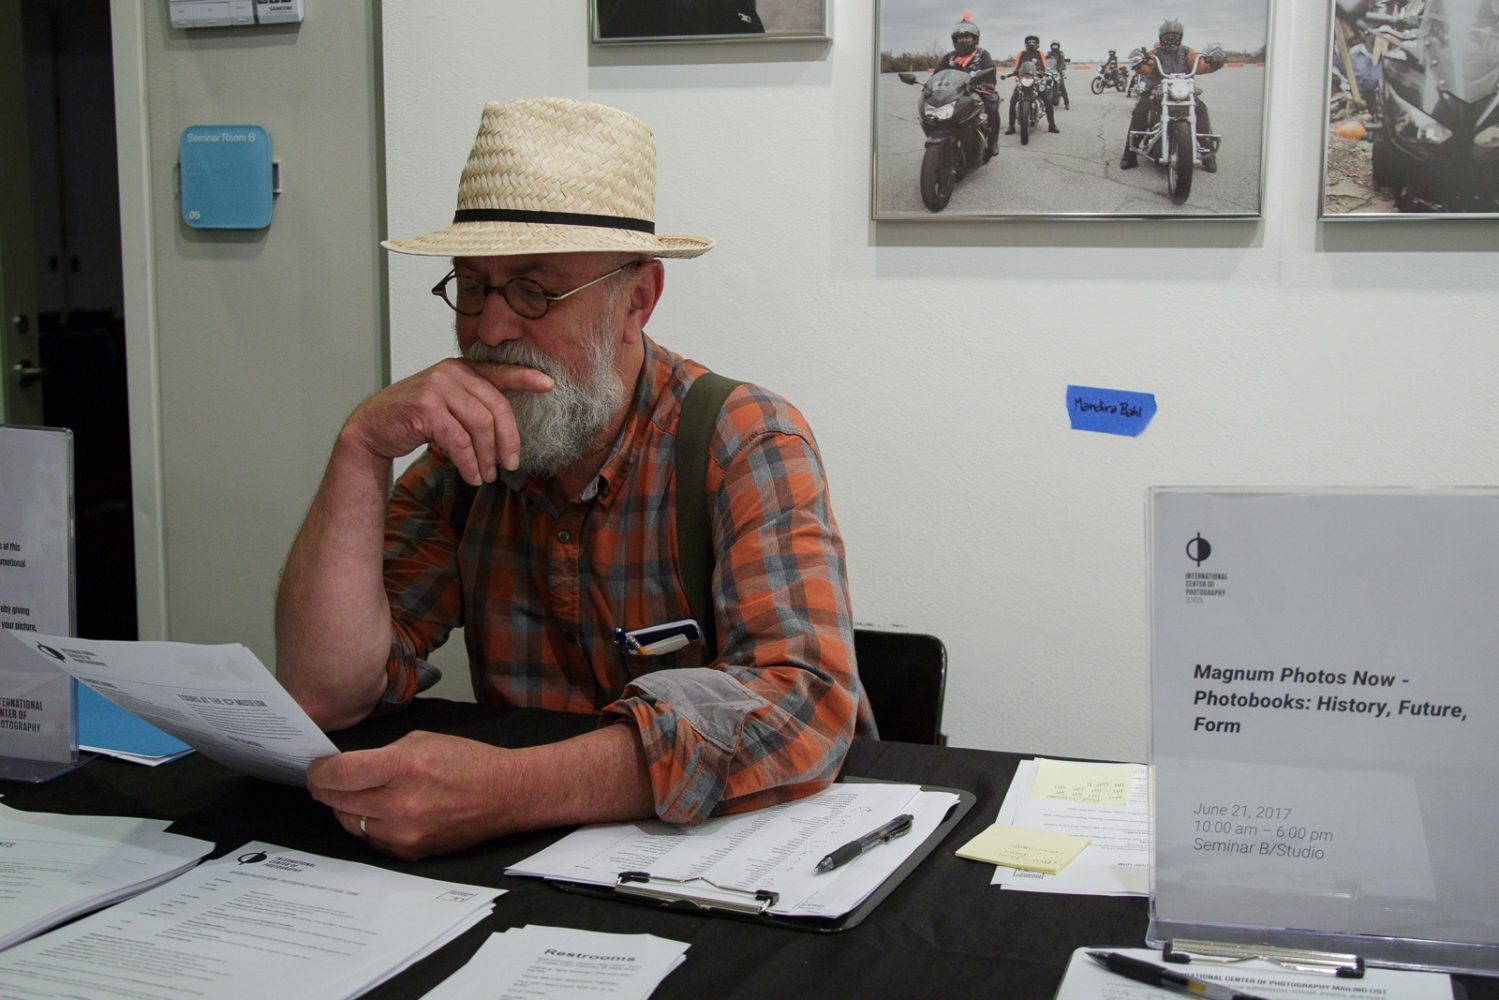 "June 21, 2017 - International Center of Photography School. New York City, NY, USA - Larry Towell sitting at the welcoming desk at the ""Magnum Photos Now- Photobooks: History, Future, Form"" event."